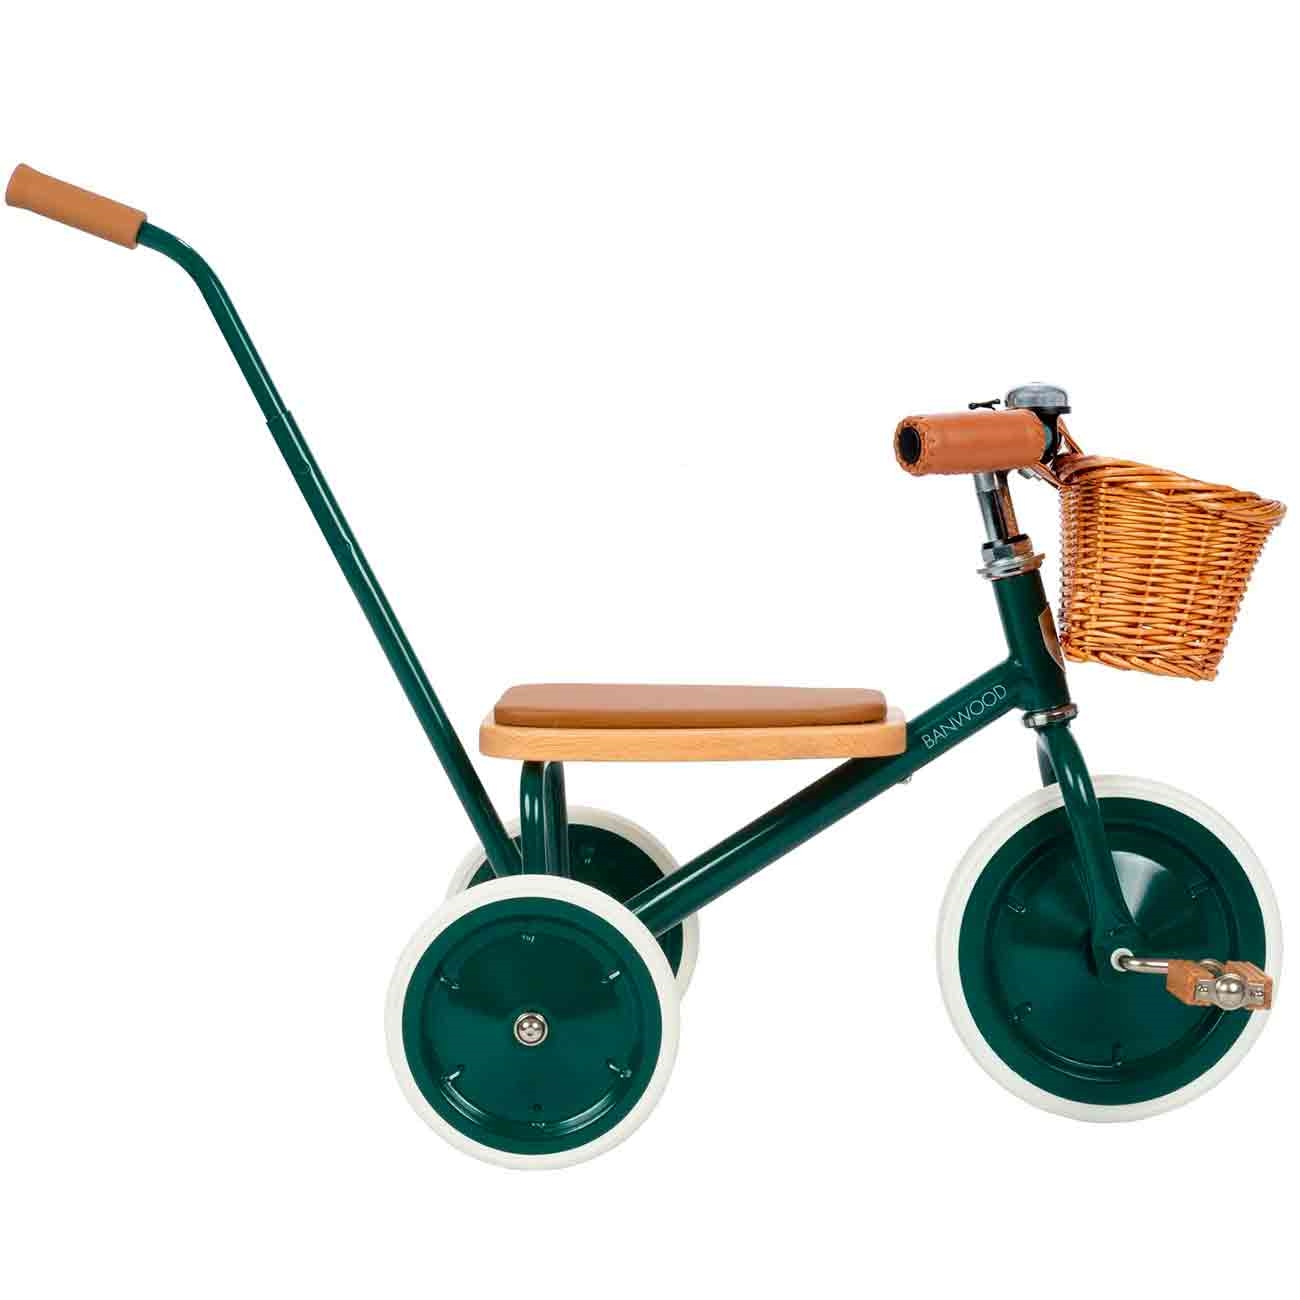 banwood-trike-trehjulet-cykel-bicycle-green-groen-1